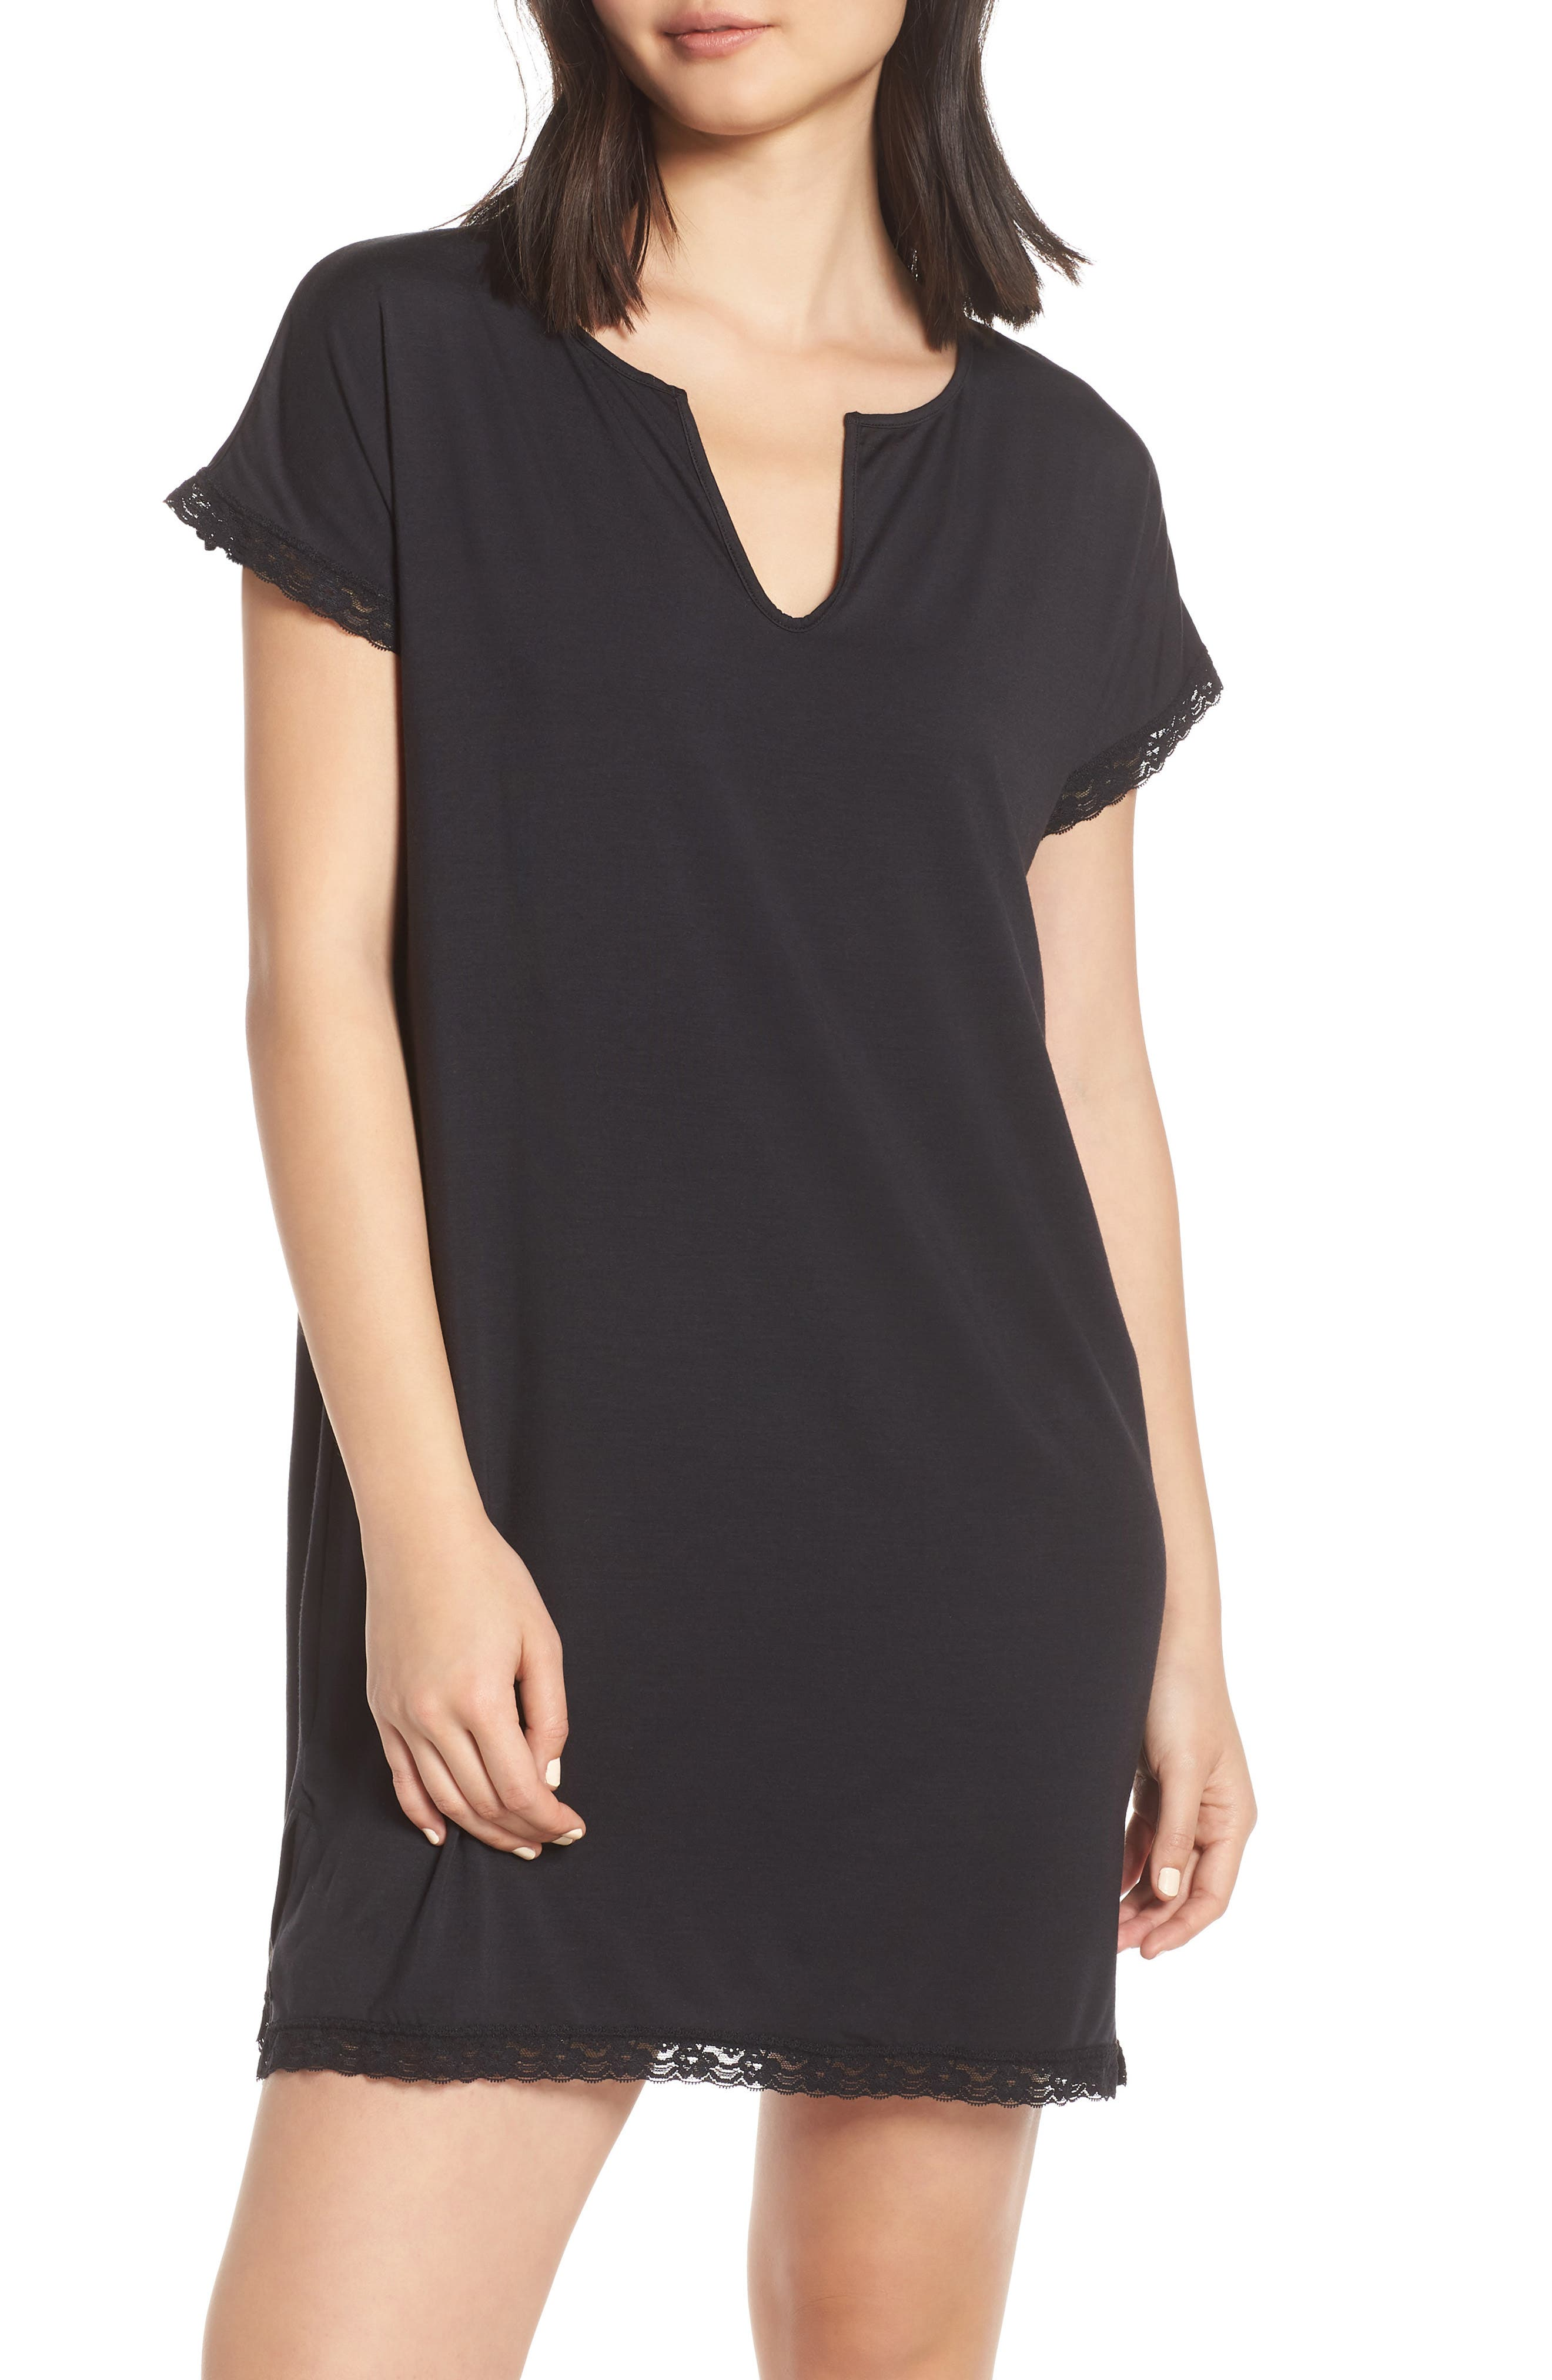 Barefoot Dreams Luxe Jersey Nightgown, Black